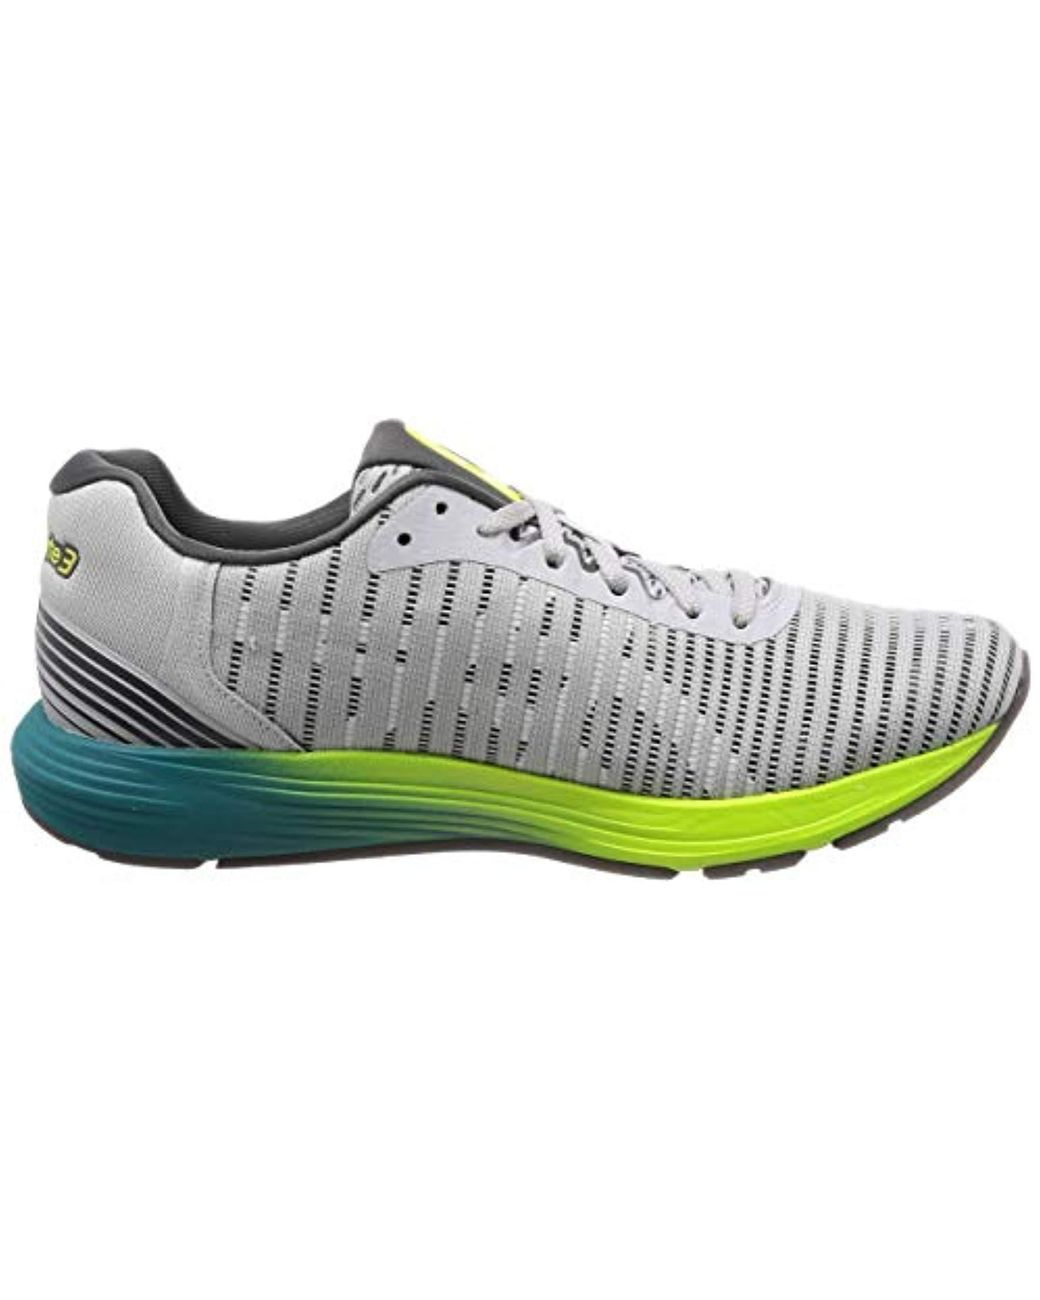 887a6d616a Asics Dynaflyte 3 Running Shoes in Gray for Men - Save 36% - Lyst